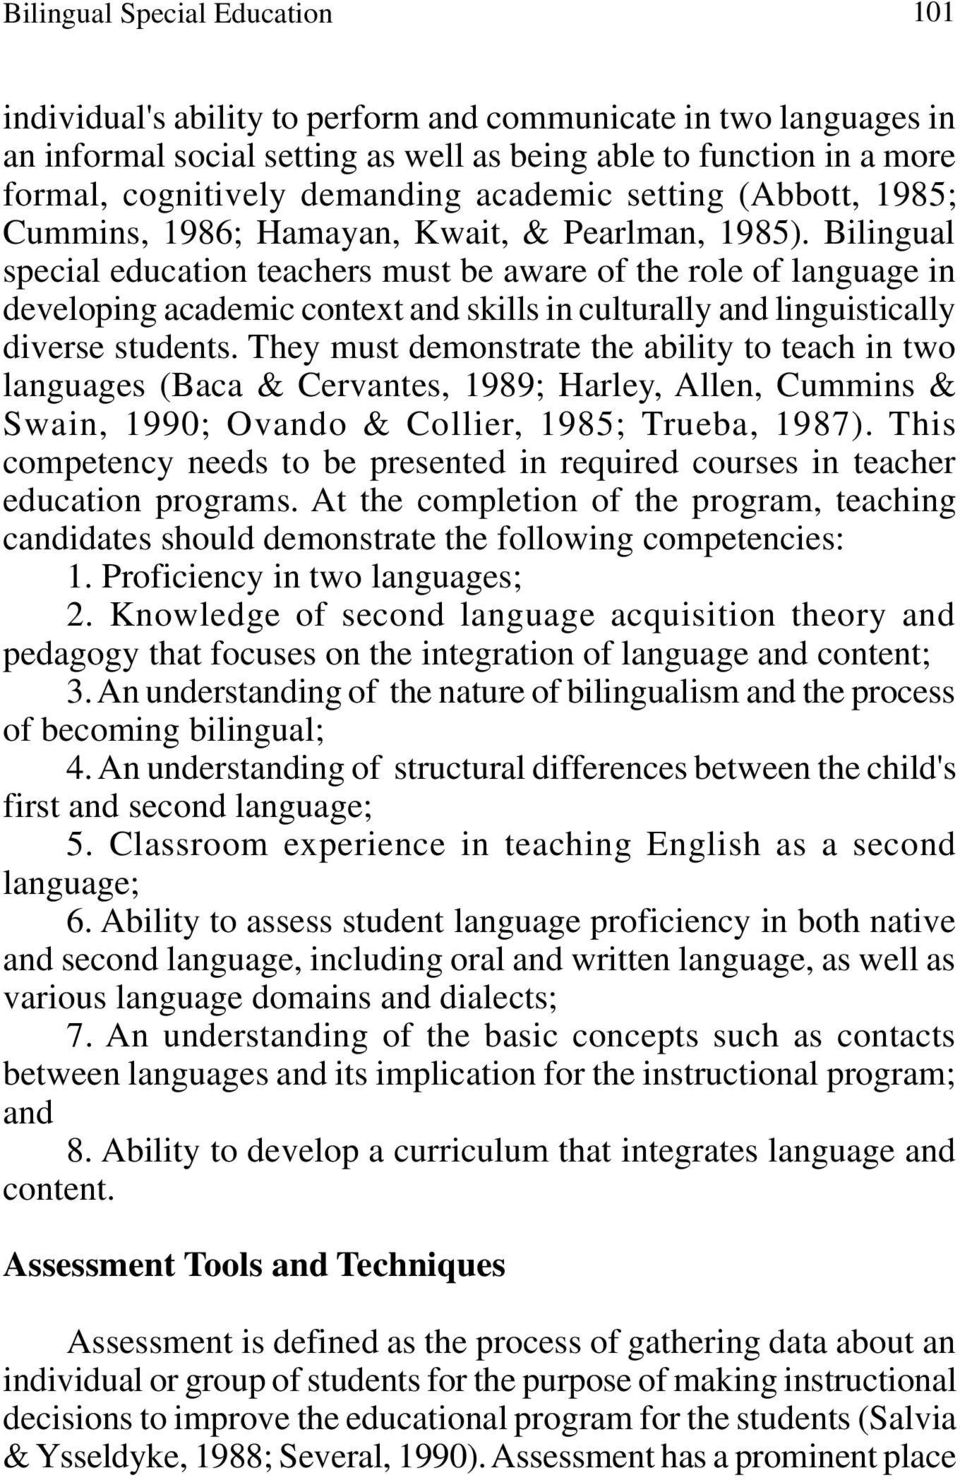 Bilingual special education teachers must be aware of the role of language in developing academic context and skills in culturally and linguistically diverse students.